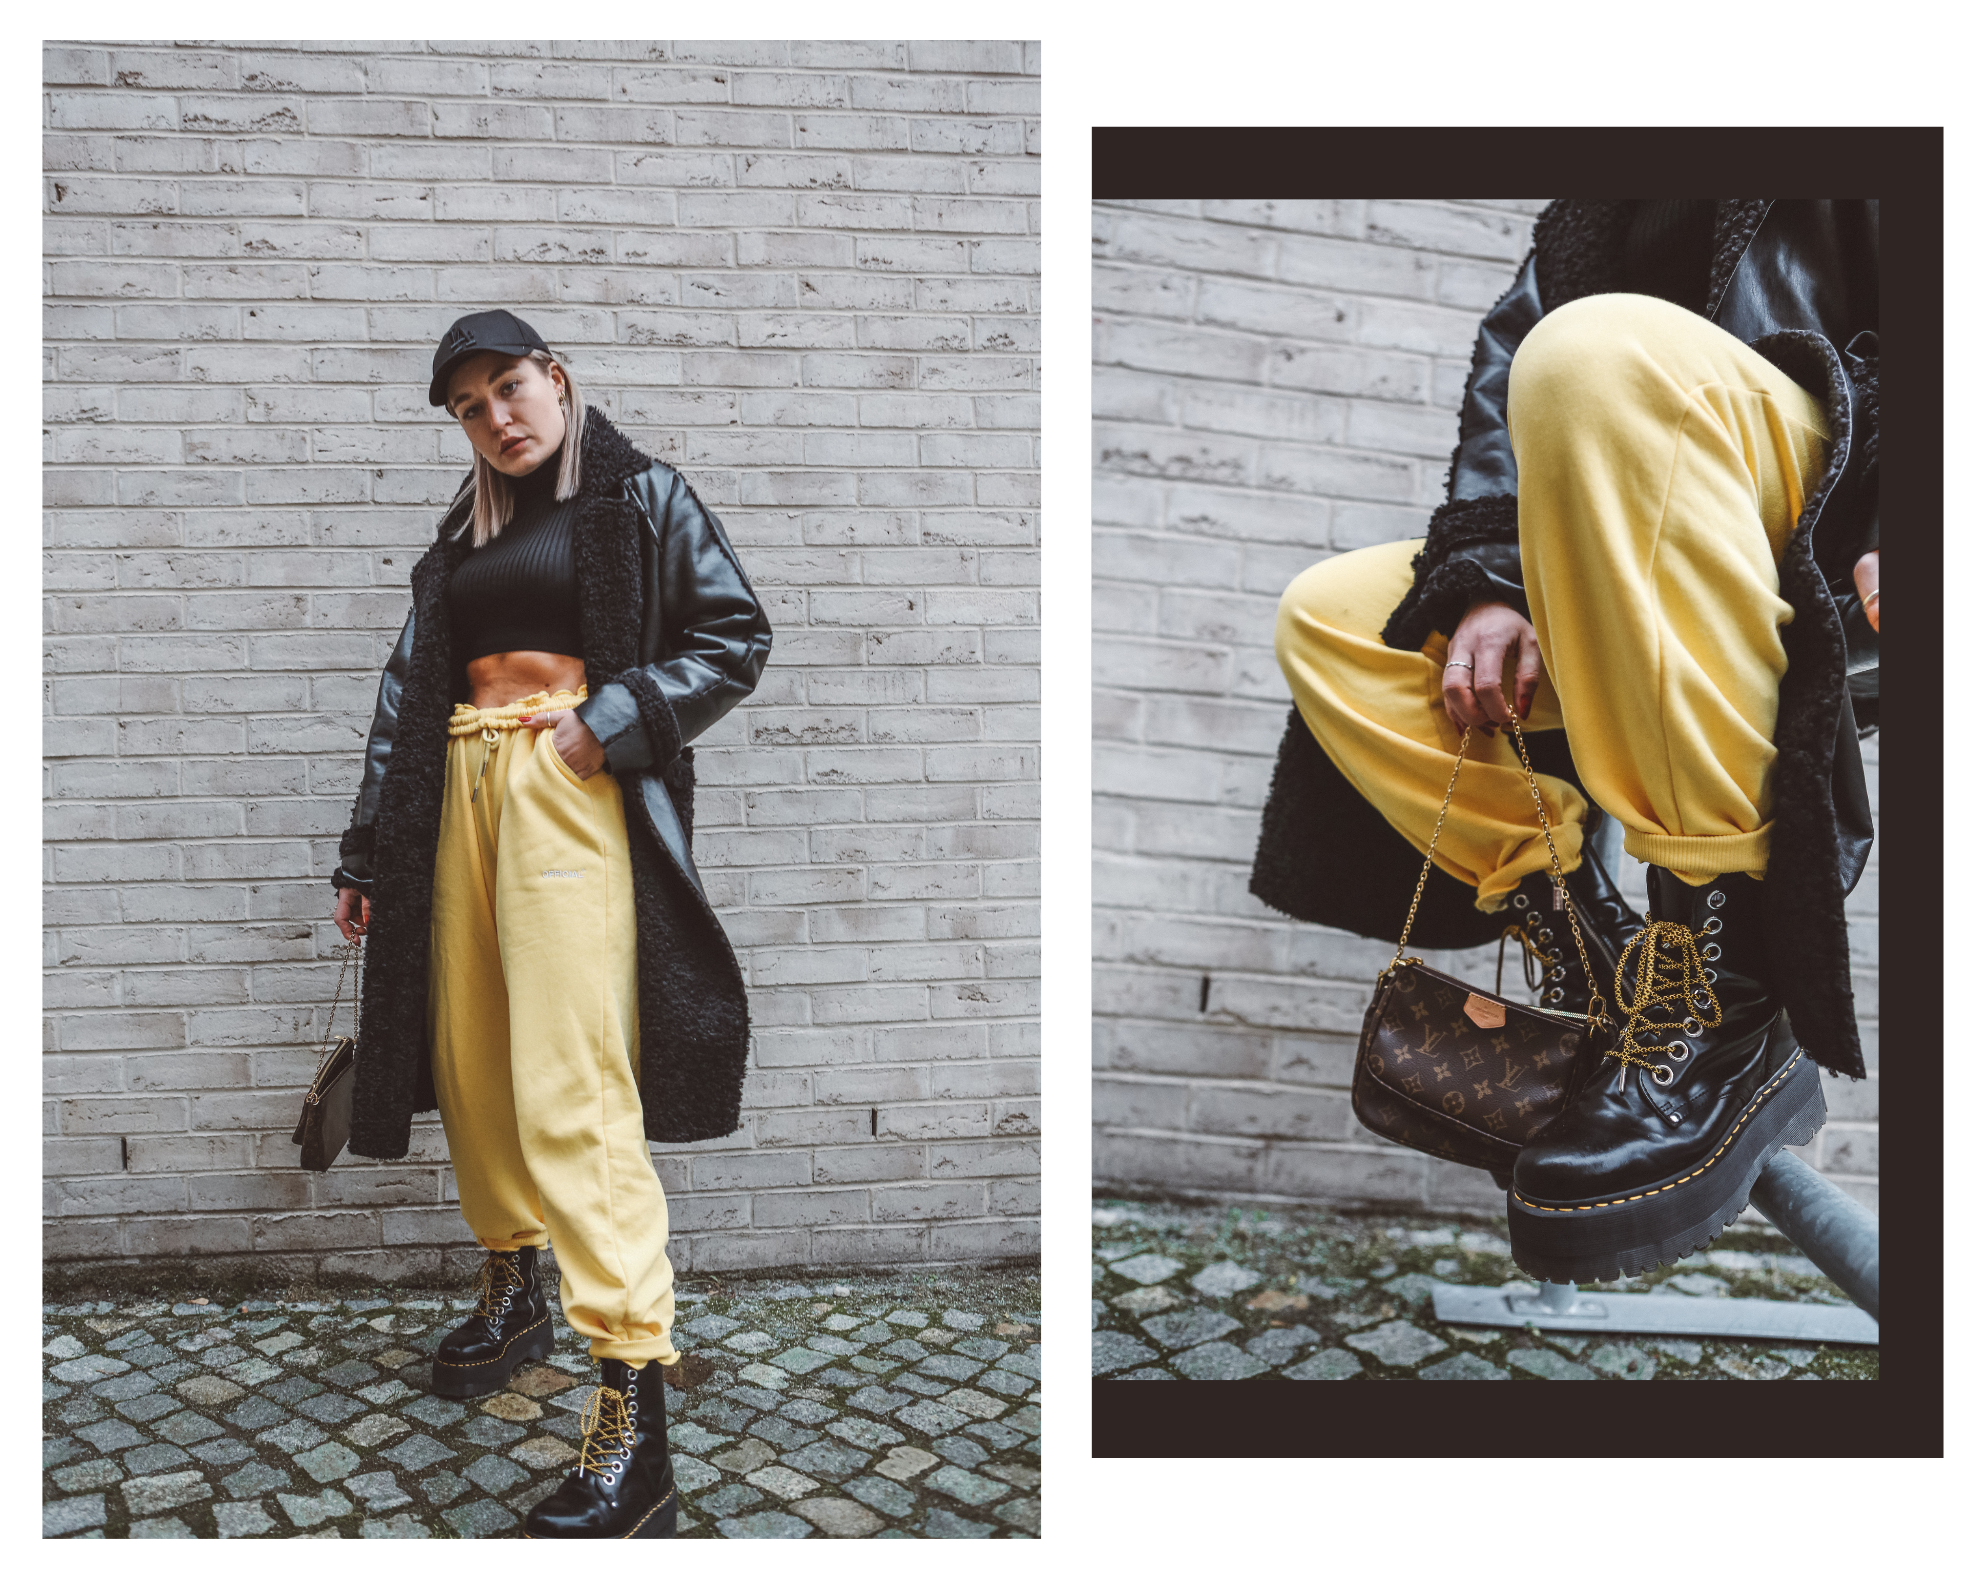 Lauralamode Outfit Streetstyle Style Look Outfitoftheday Fashion Fashionblogger Munich Berlin Berlinblogger Munichblogger Louis Vuitton Multipochette Doc Martens Jogger Style Winter Streetstyle5